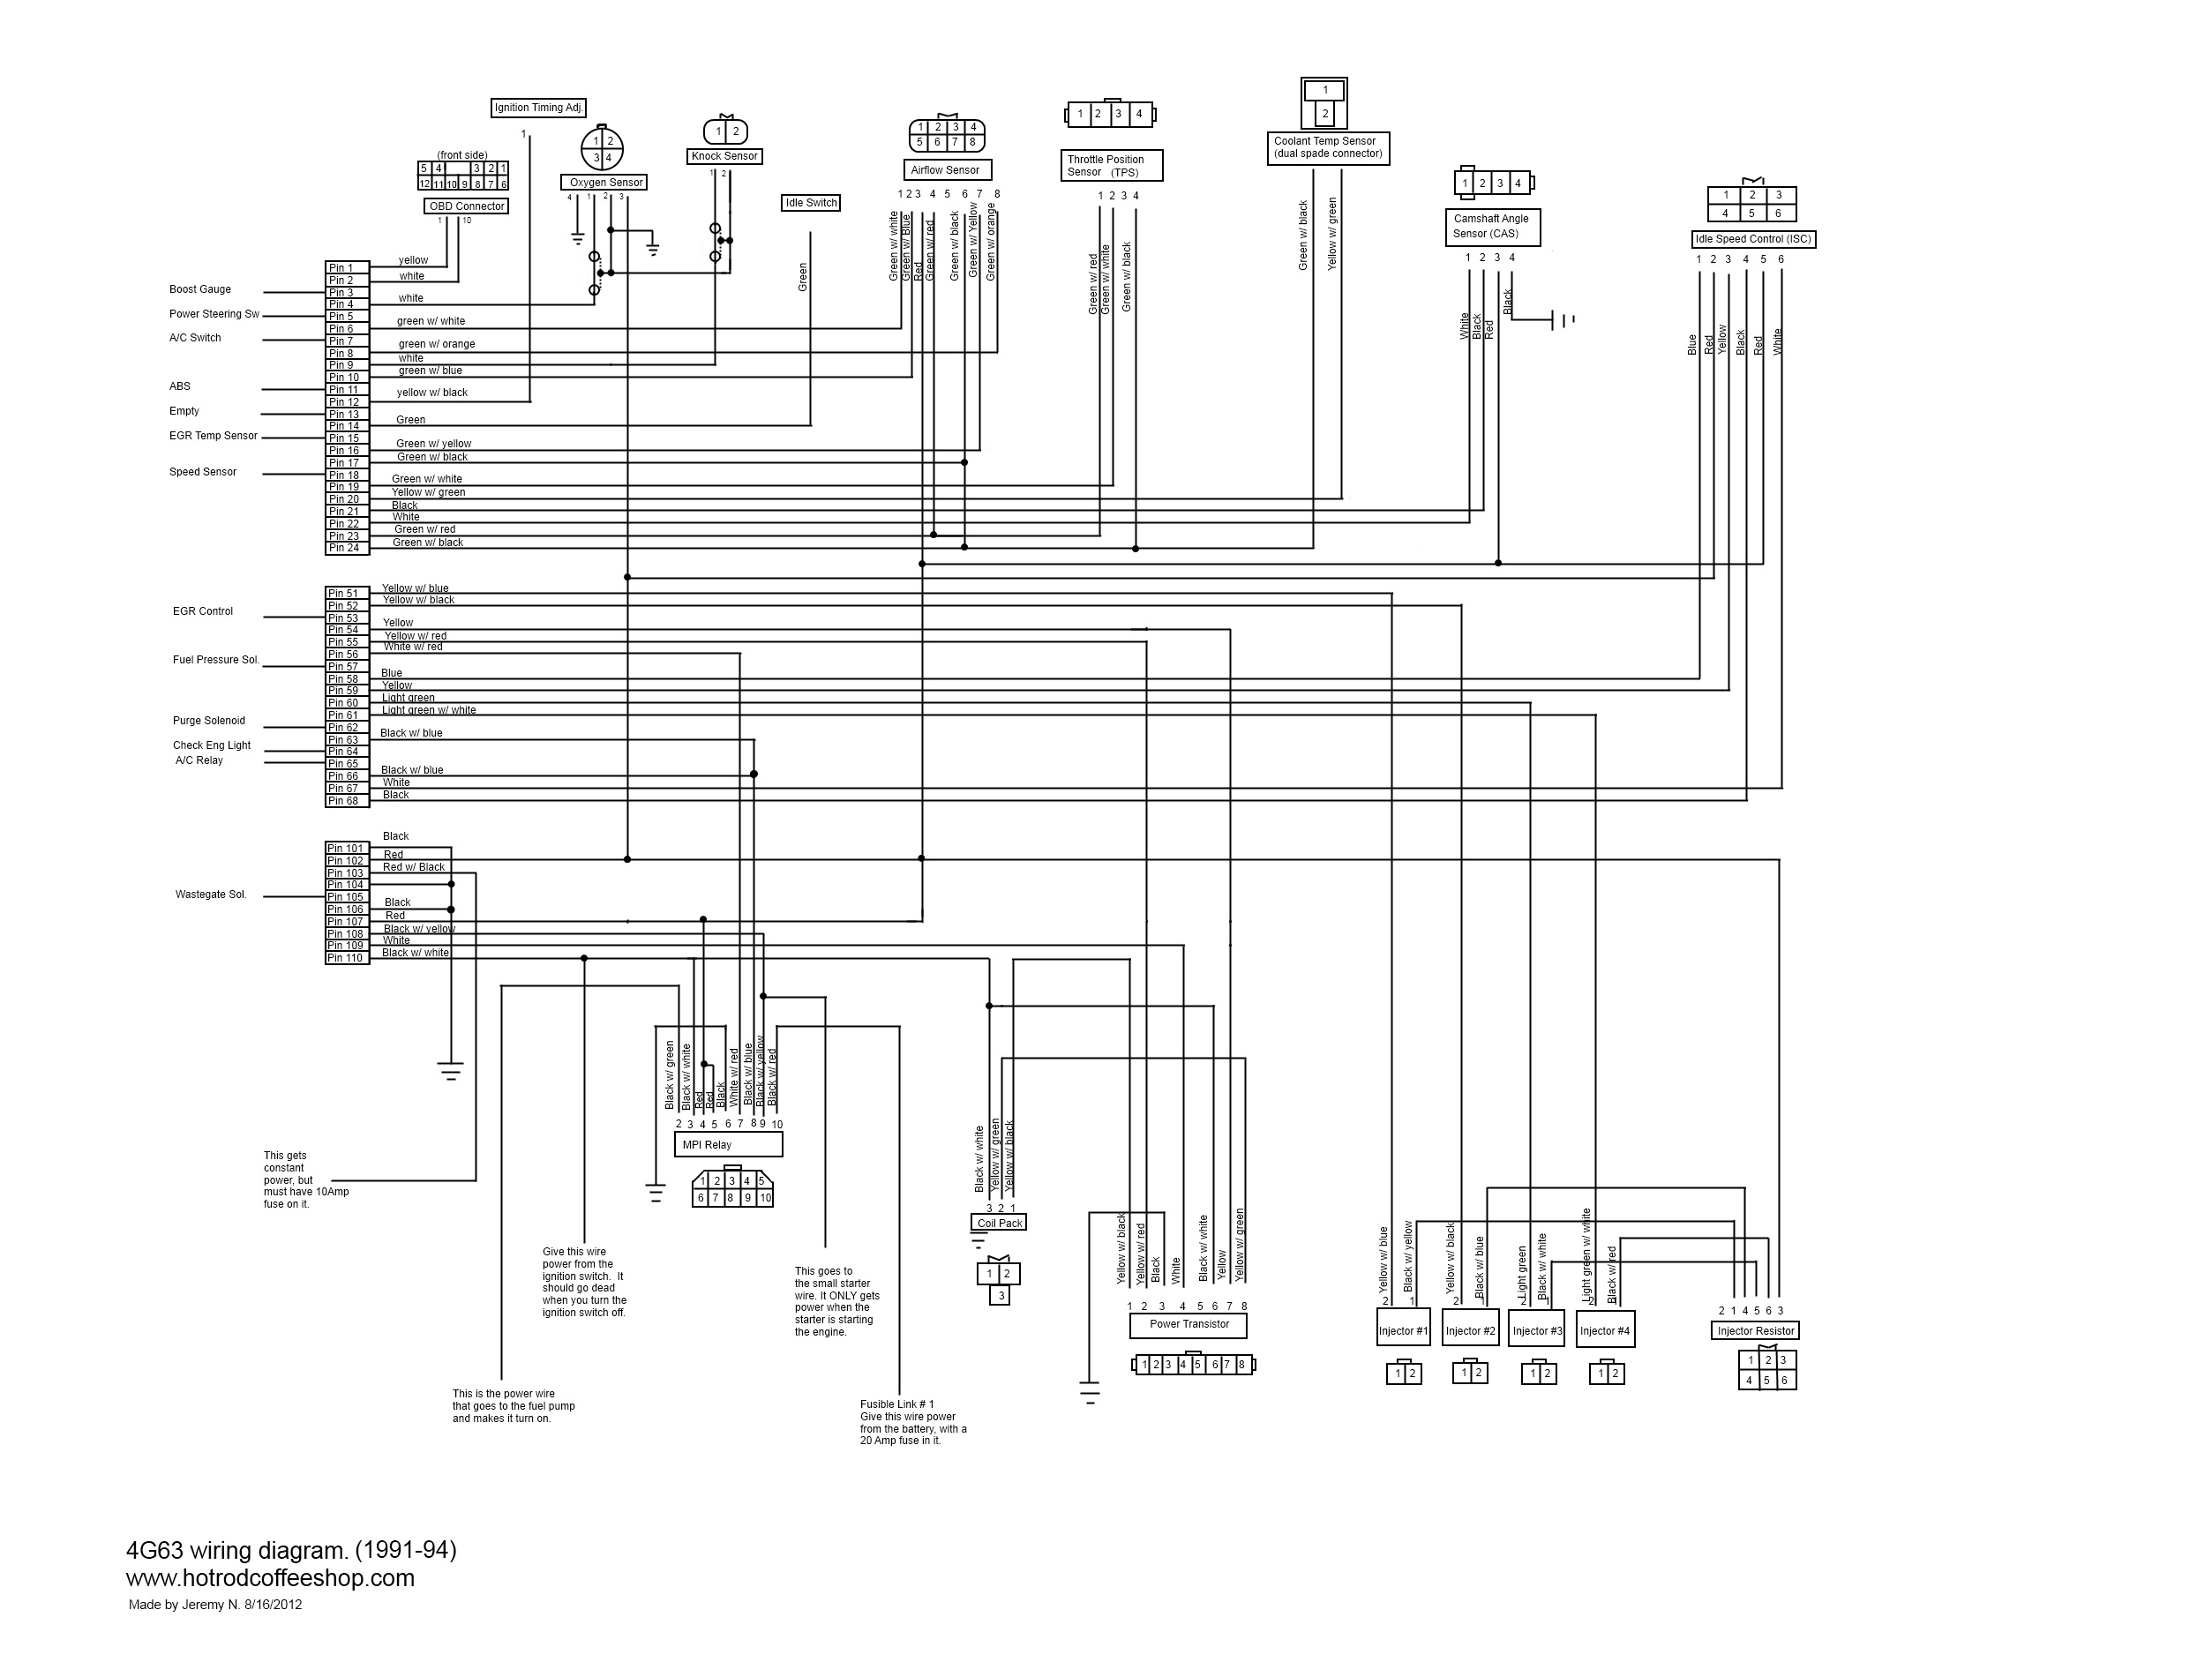 mitsubishi 4g63 engine diagram z3 wiring library diagram4g63 engine diagram library wiring diagram mitsubishi 4g64 4g63t engine diagram hotrodcoffeeshop com 4g63 engine block